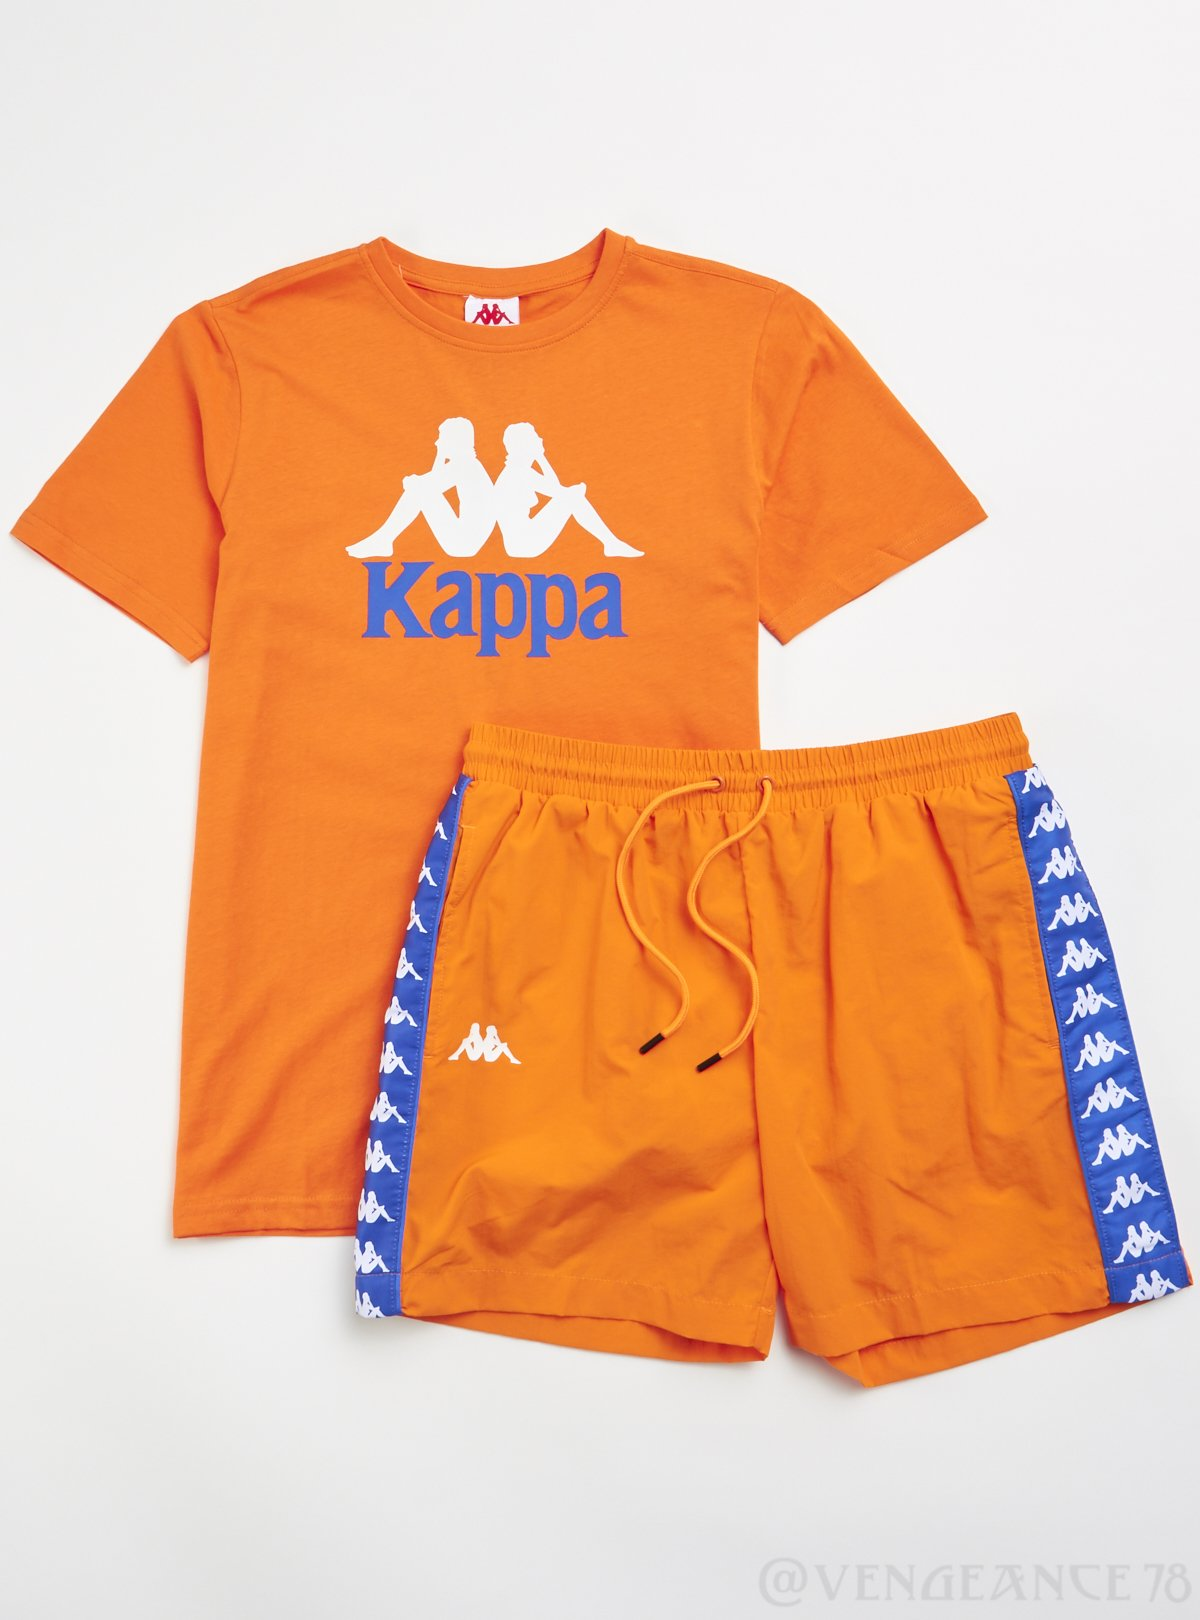 Kappa Short Set - Authentic Estessi Man - Orange and Blue - 304KPT0